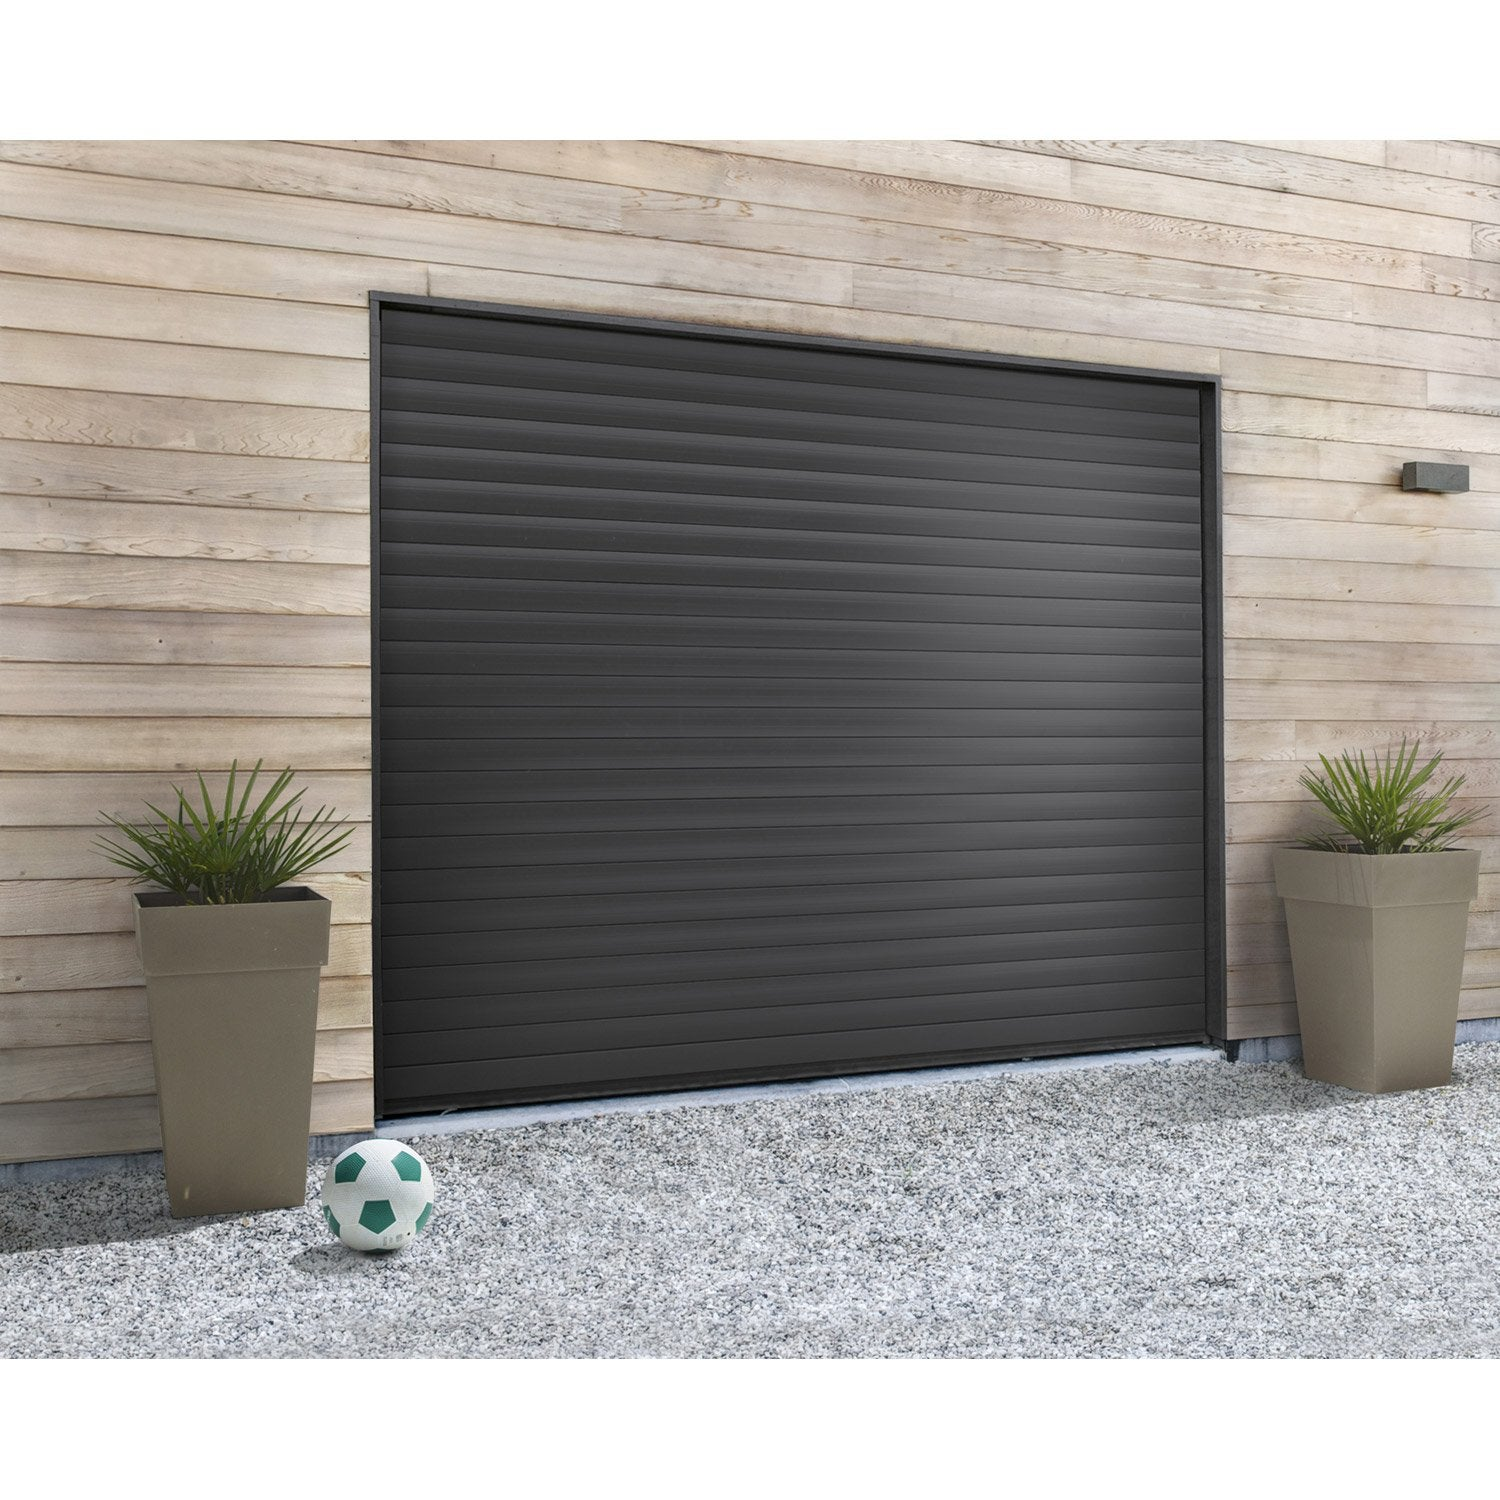 Porte de garage enroulement rollmatic hormann x cm leroy merlin - Garage bois leroy merlin ...